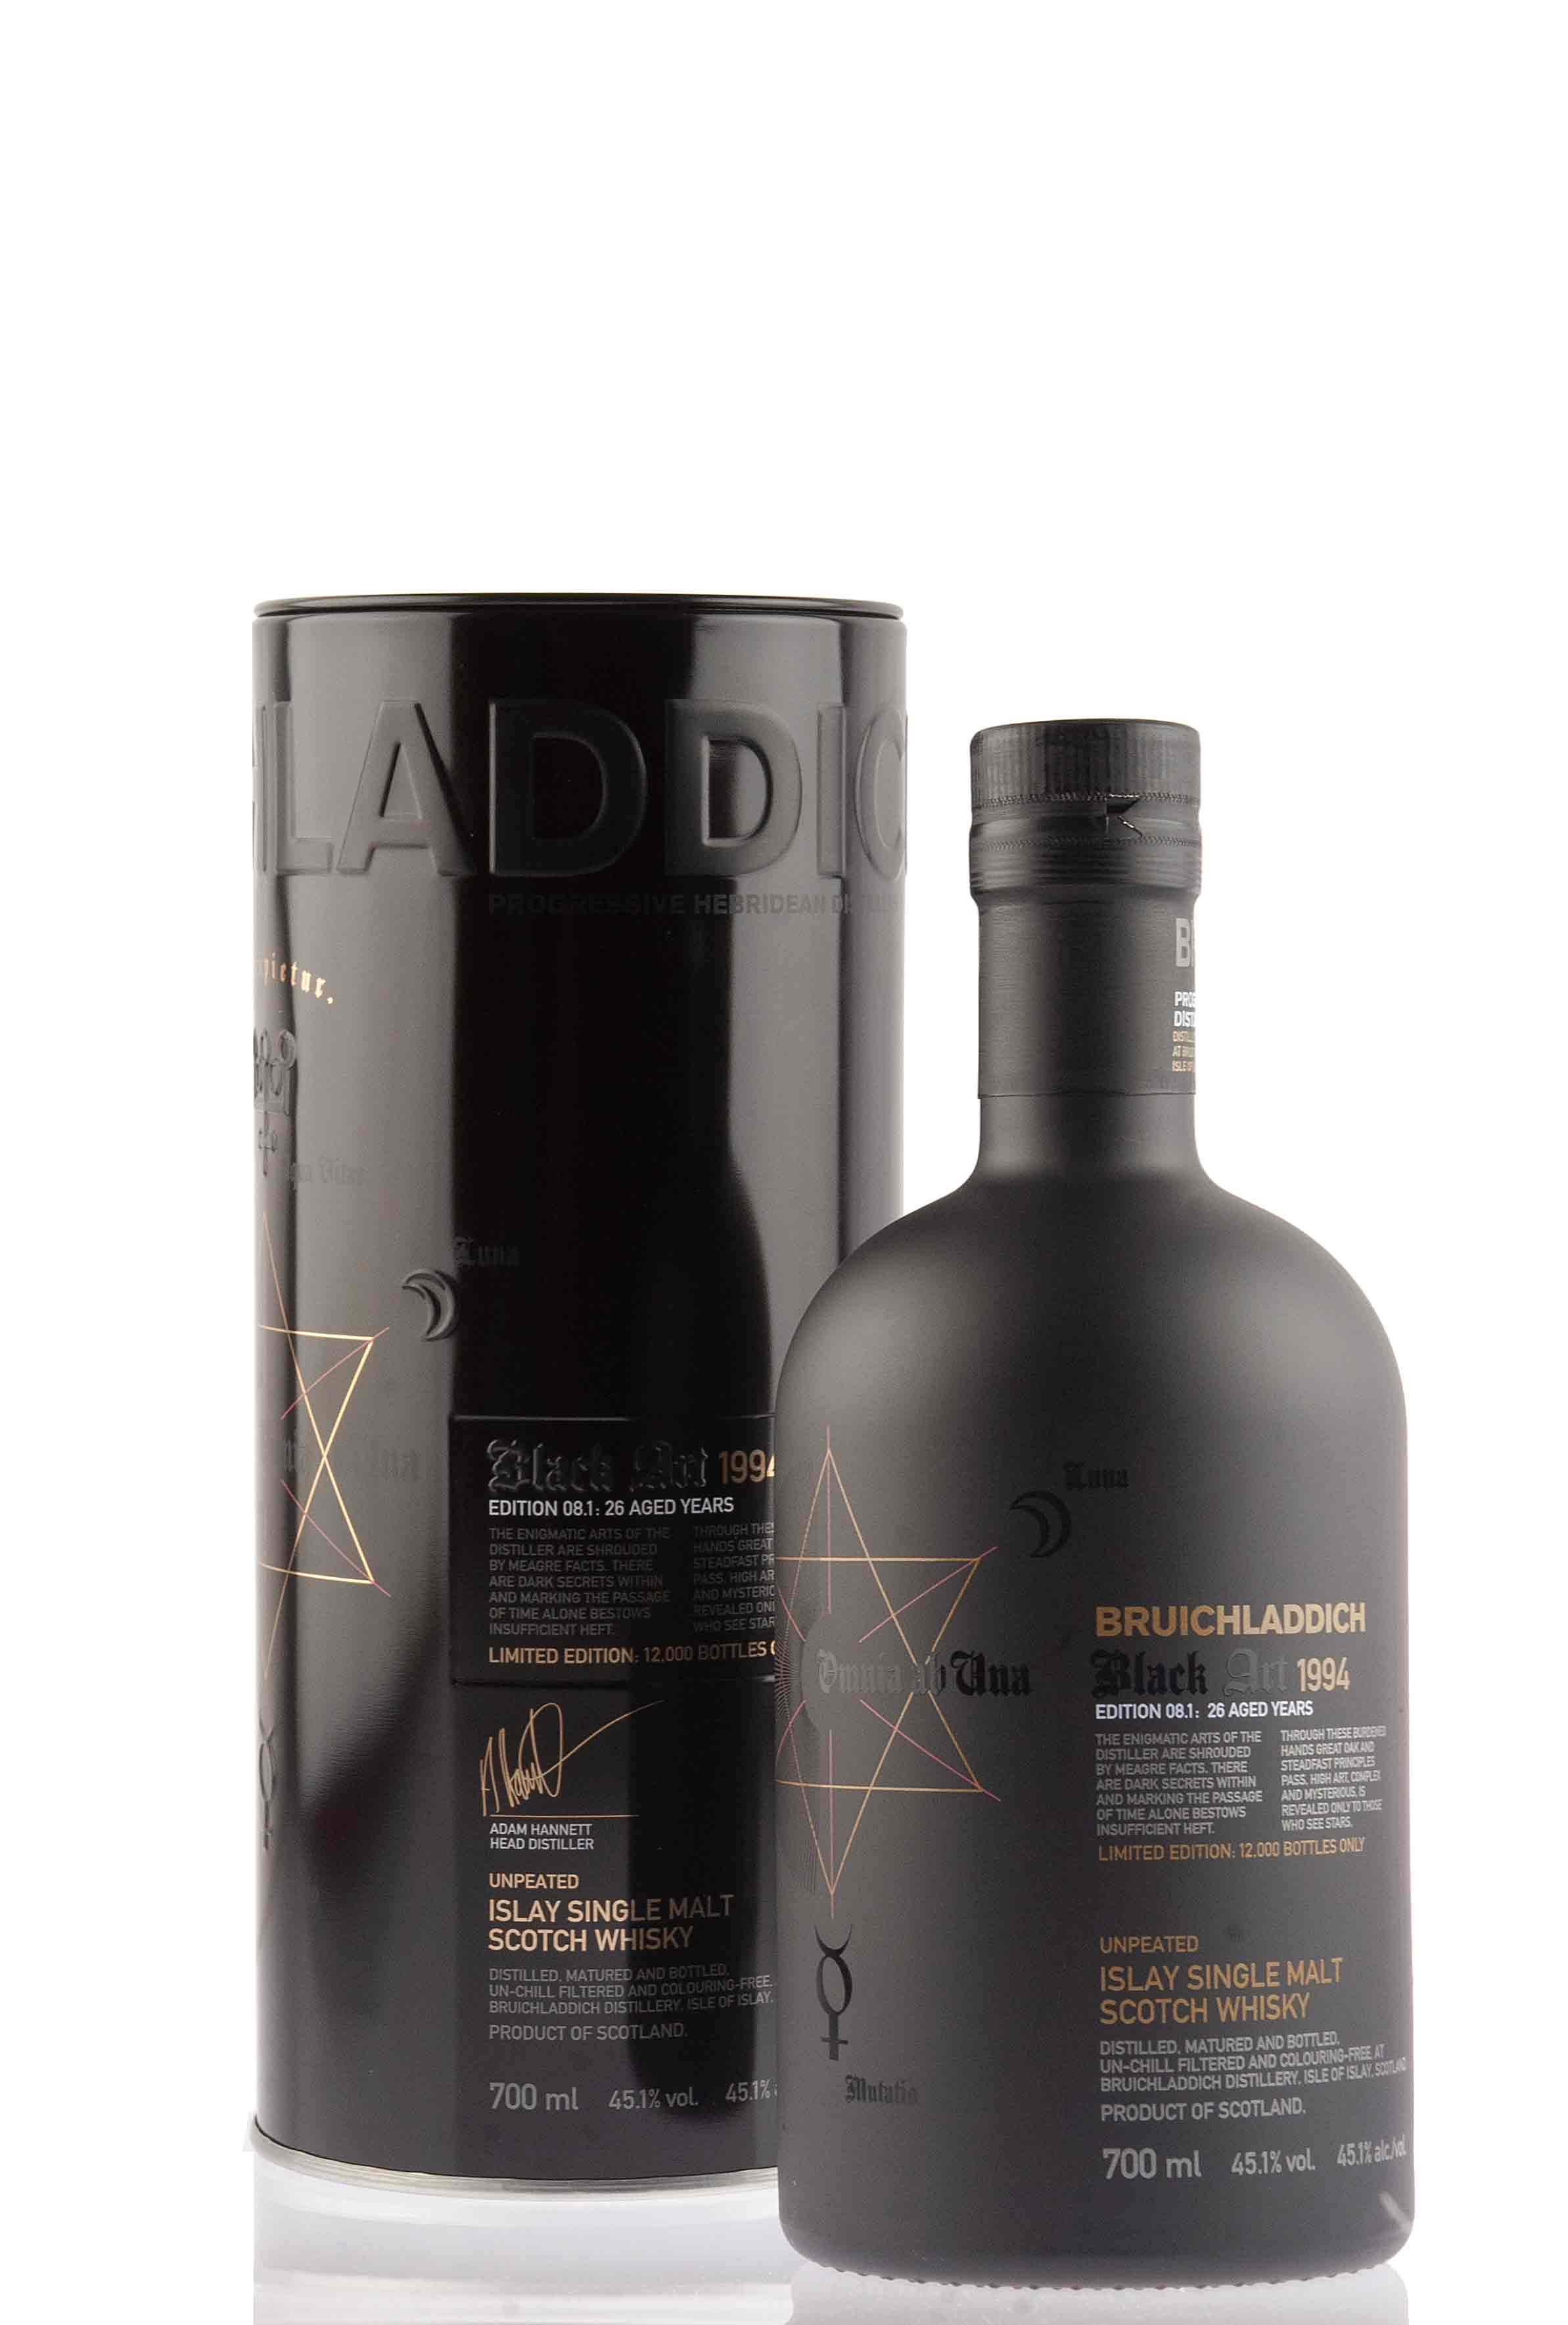 Bruichladdich Black Art -08.1 - 26 Year Old - 1994 | Abbey Whisky